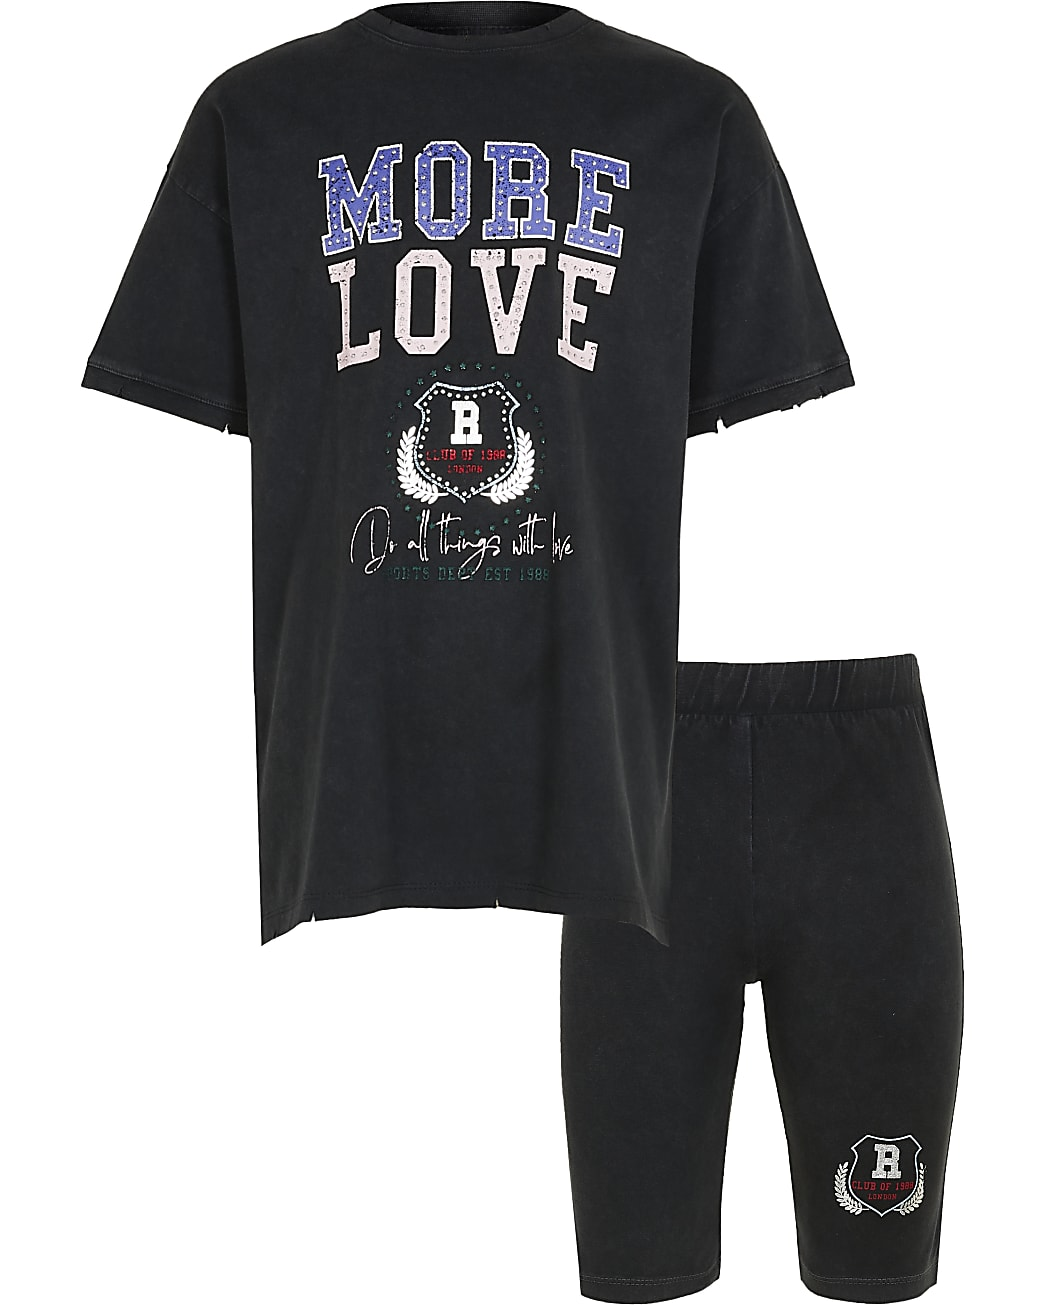 Girls grey 'More Love' t-shirt outfit